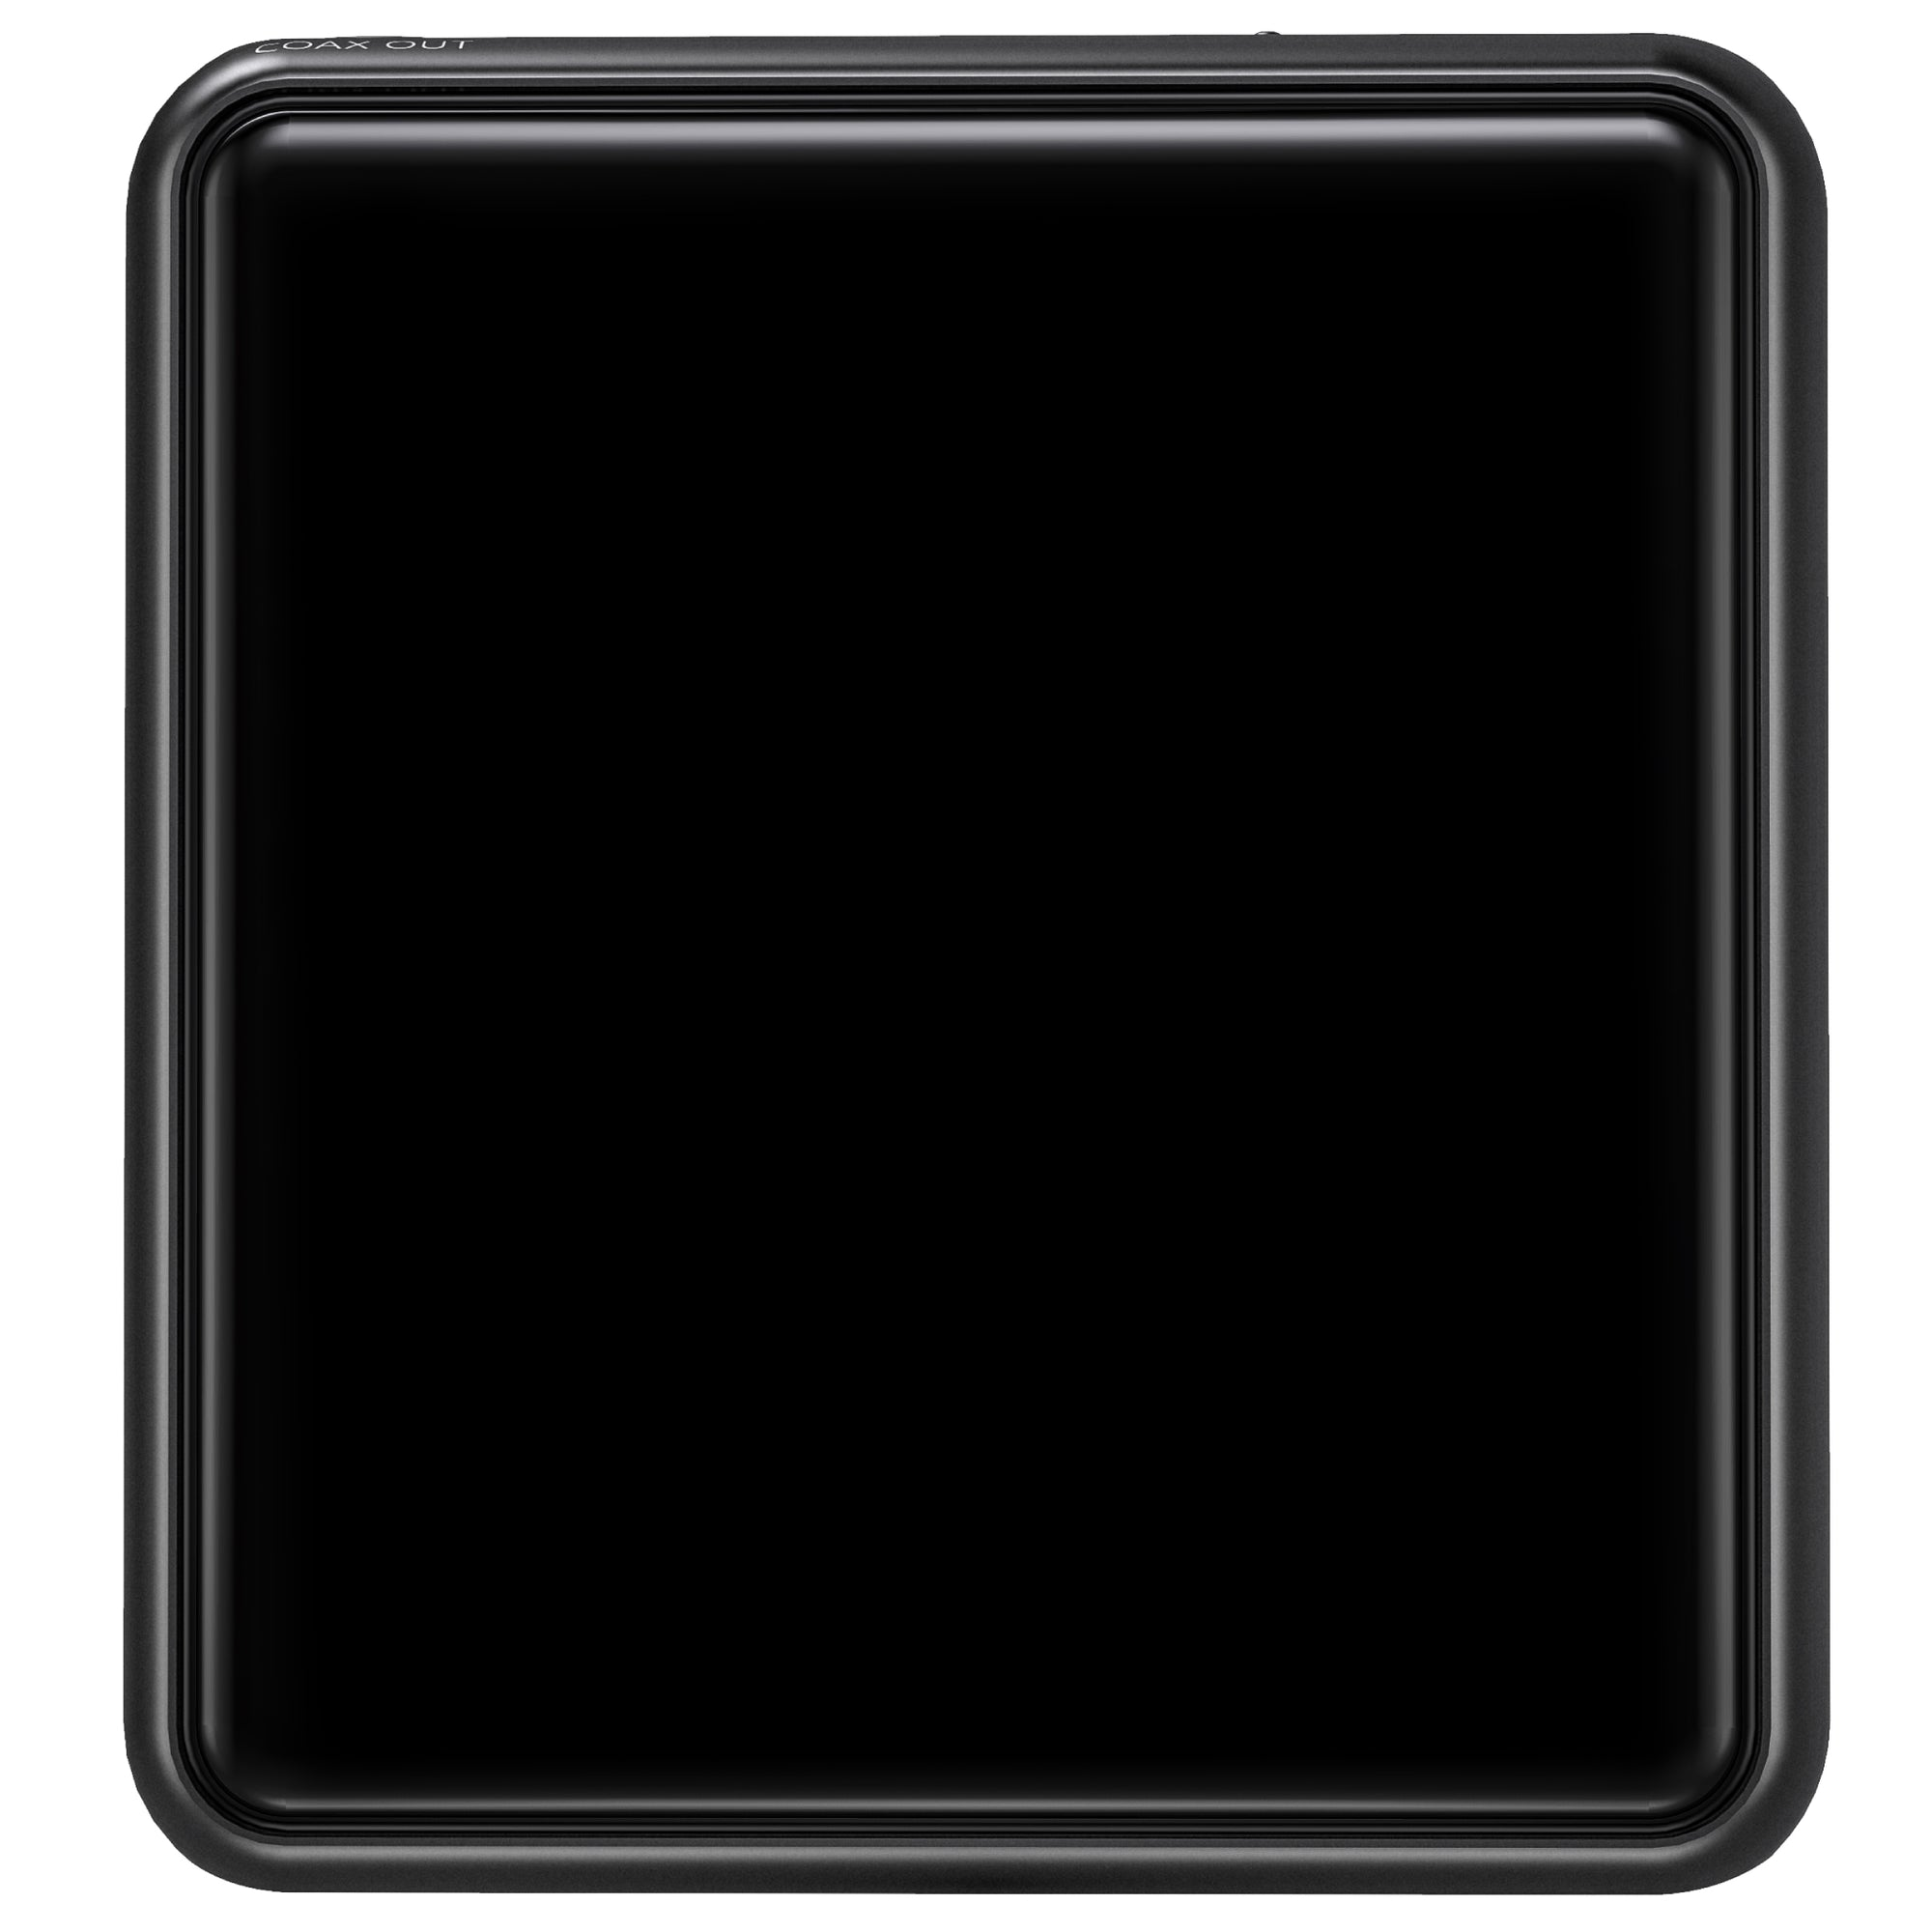 FiiO M5 Portable DAP (Black) - Gears For Ears